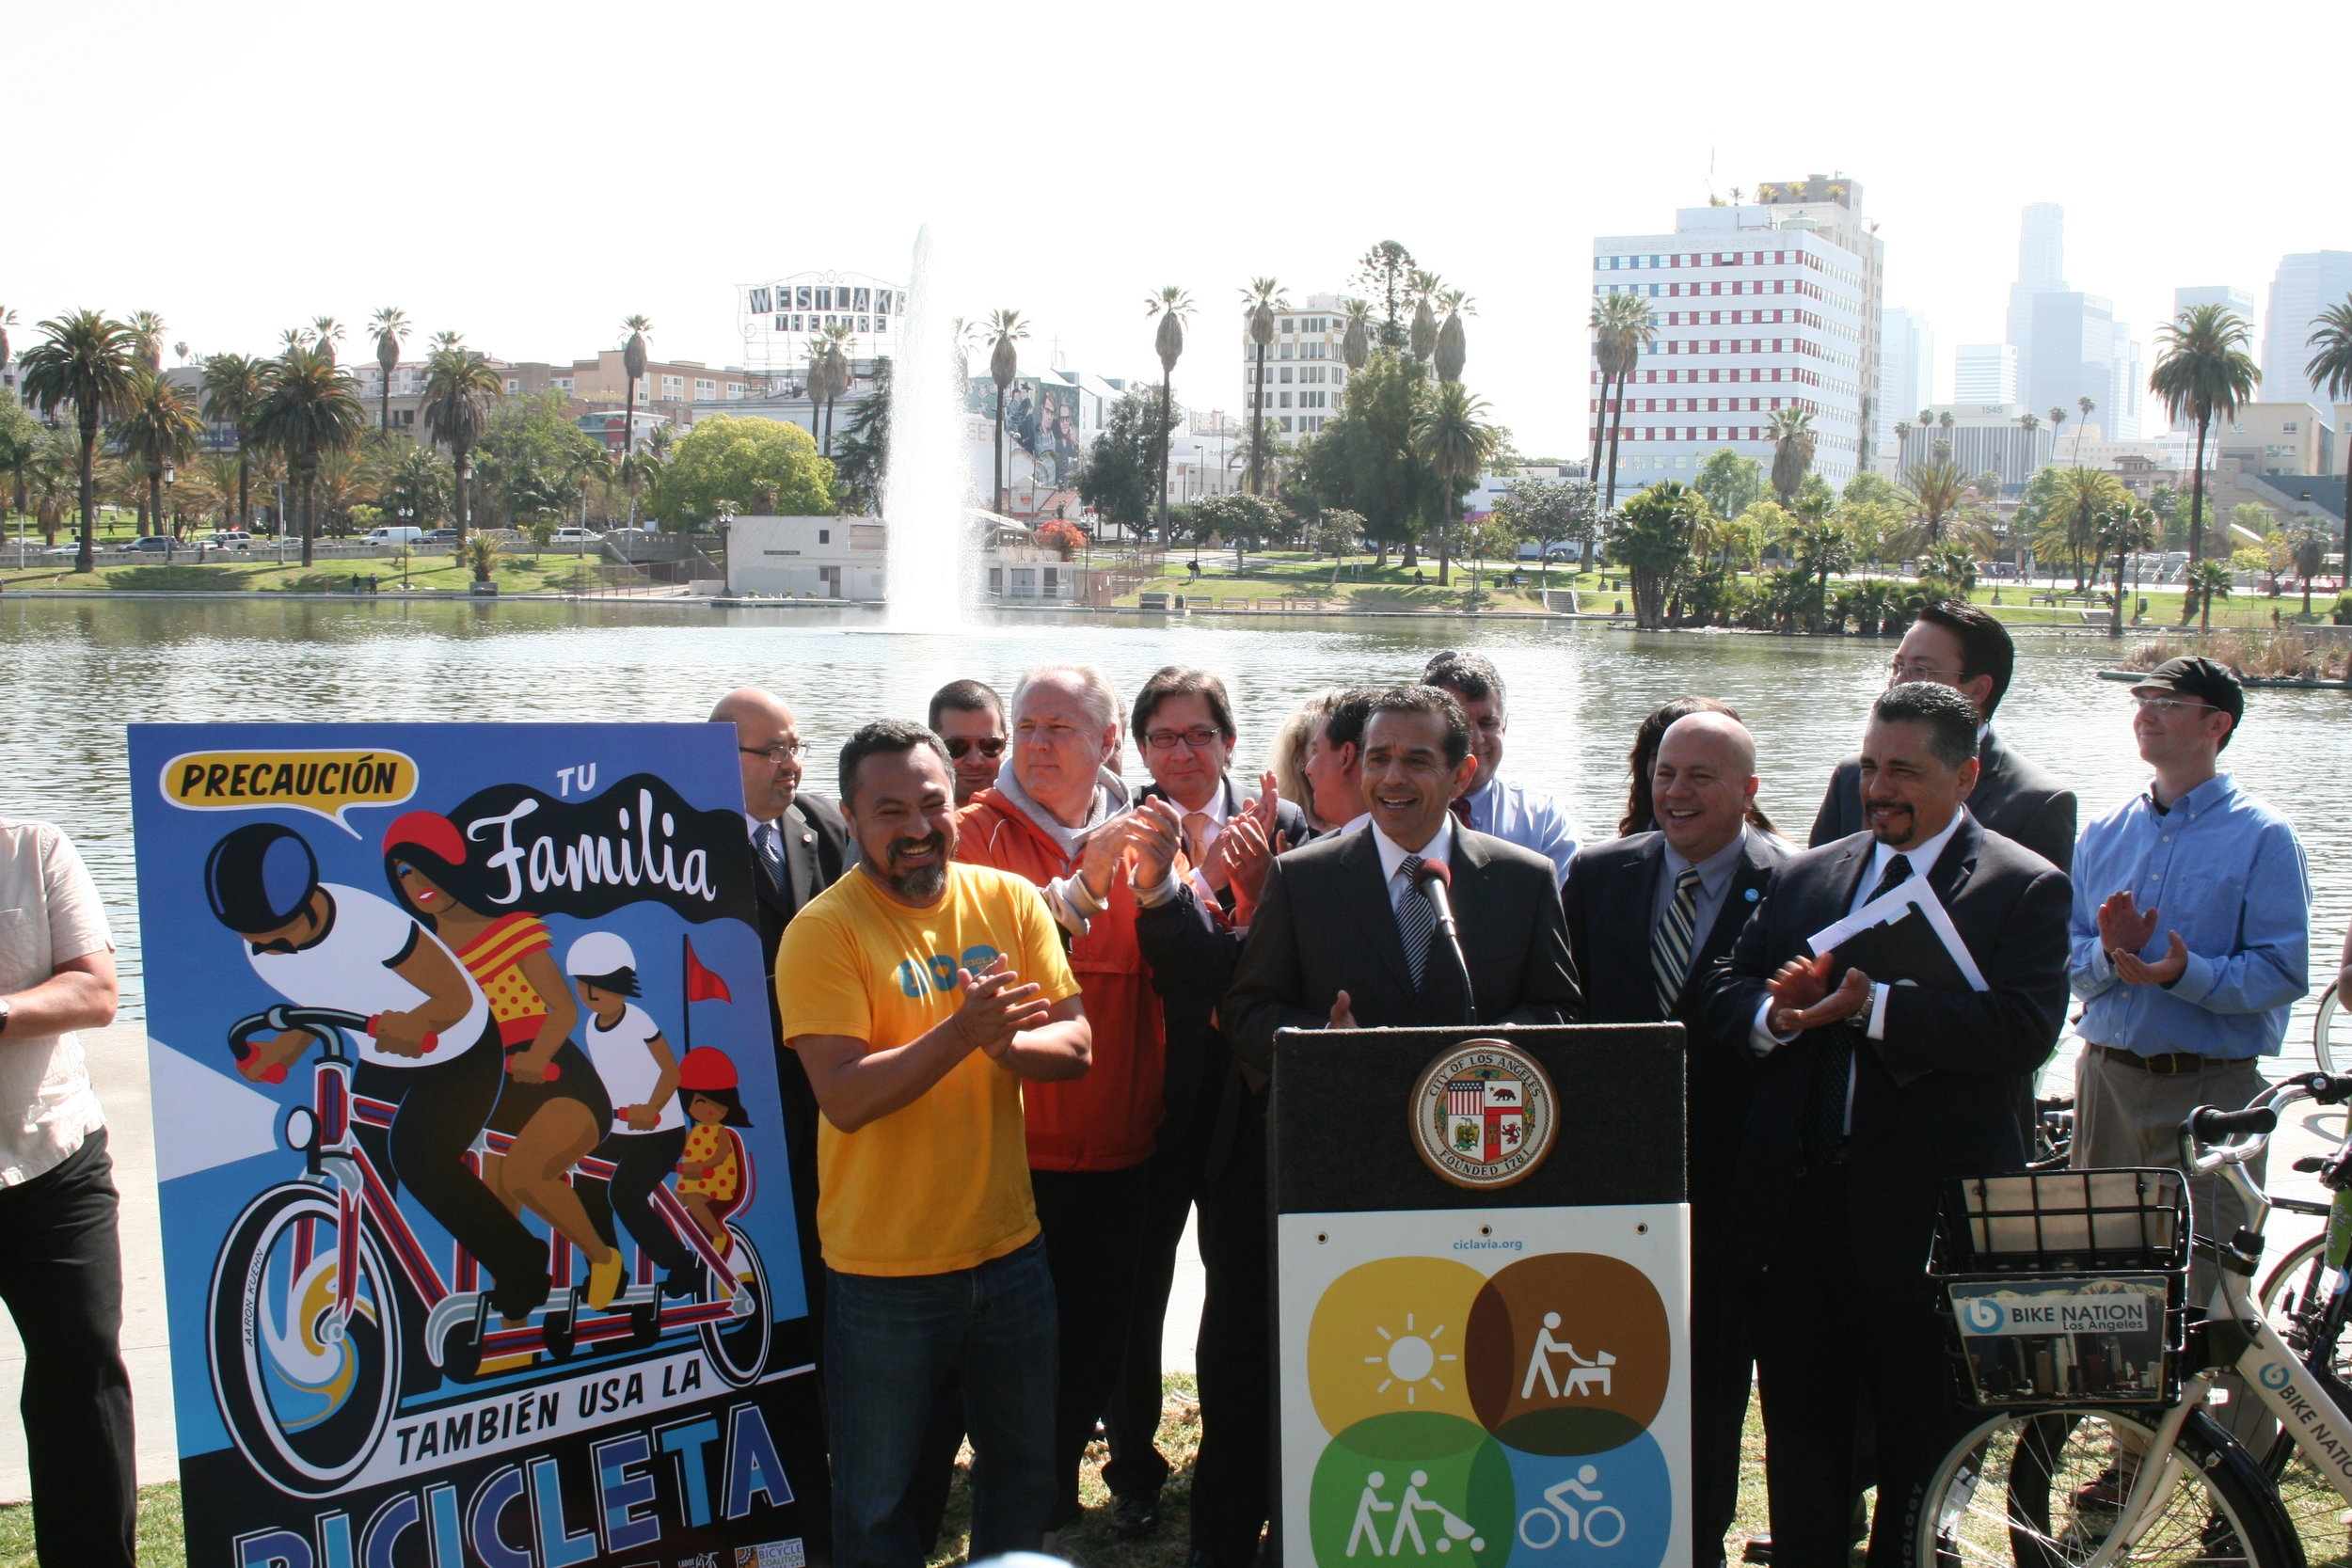 Mayor Villaraigosa presents PSA at a press conference on 4.5.2012